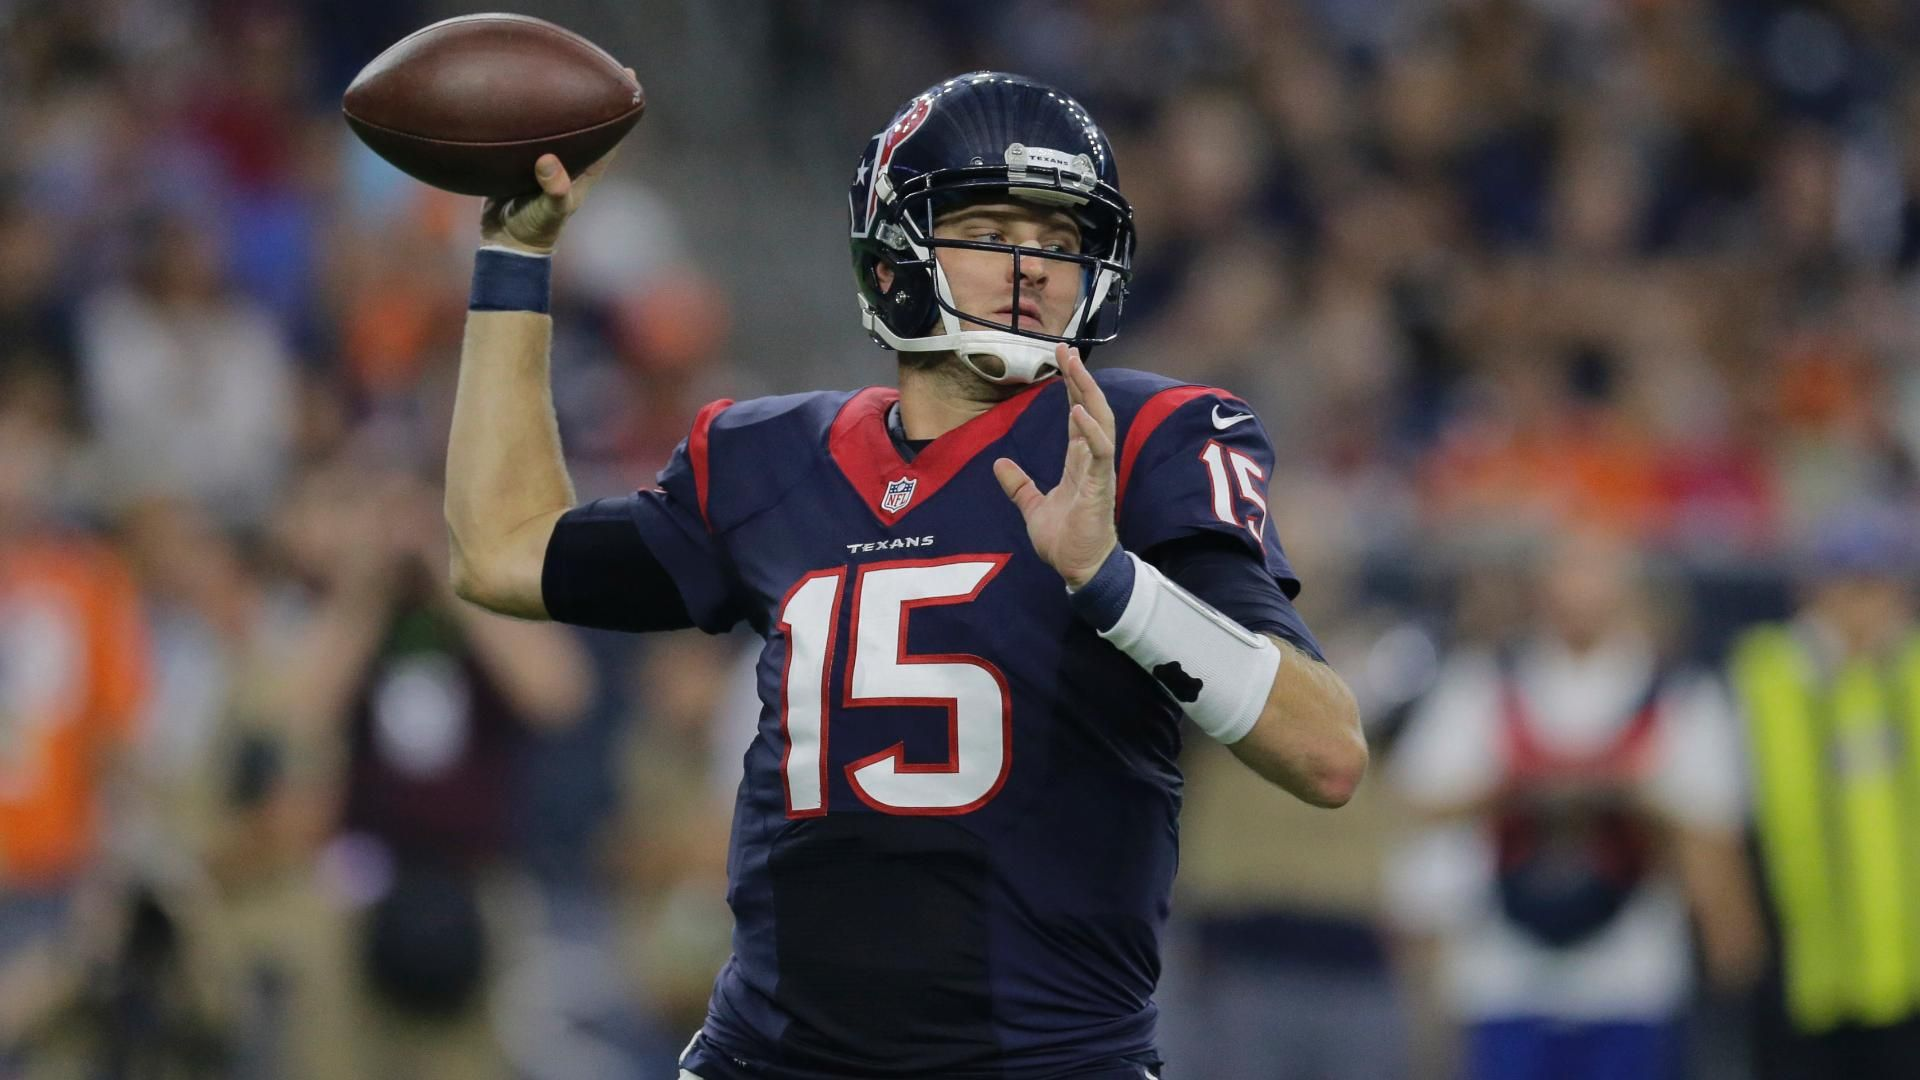 Schiano believes Texans can't go back to Brian Hoyer at QB